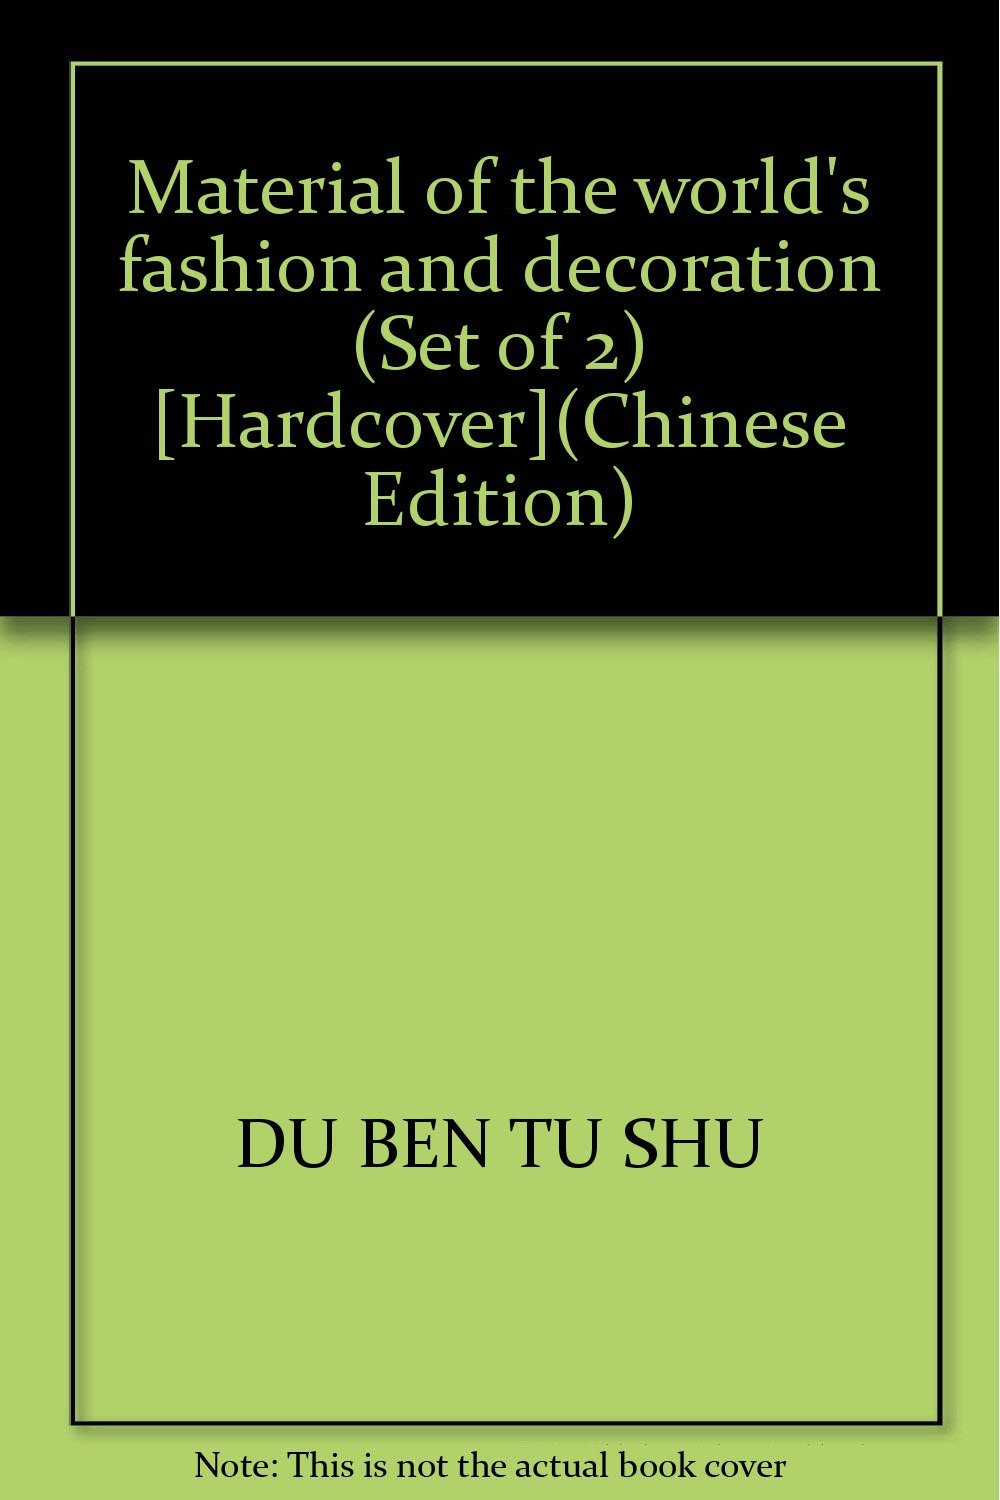 Material of the world's fashion and decoration (Set of 2) [Hardcover](Chinese Edition) ebook